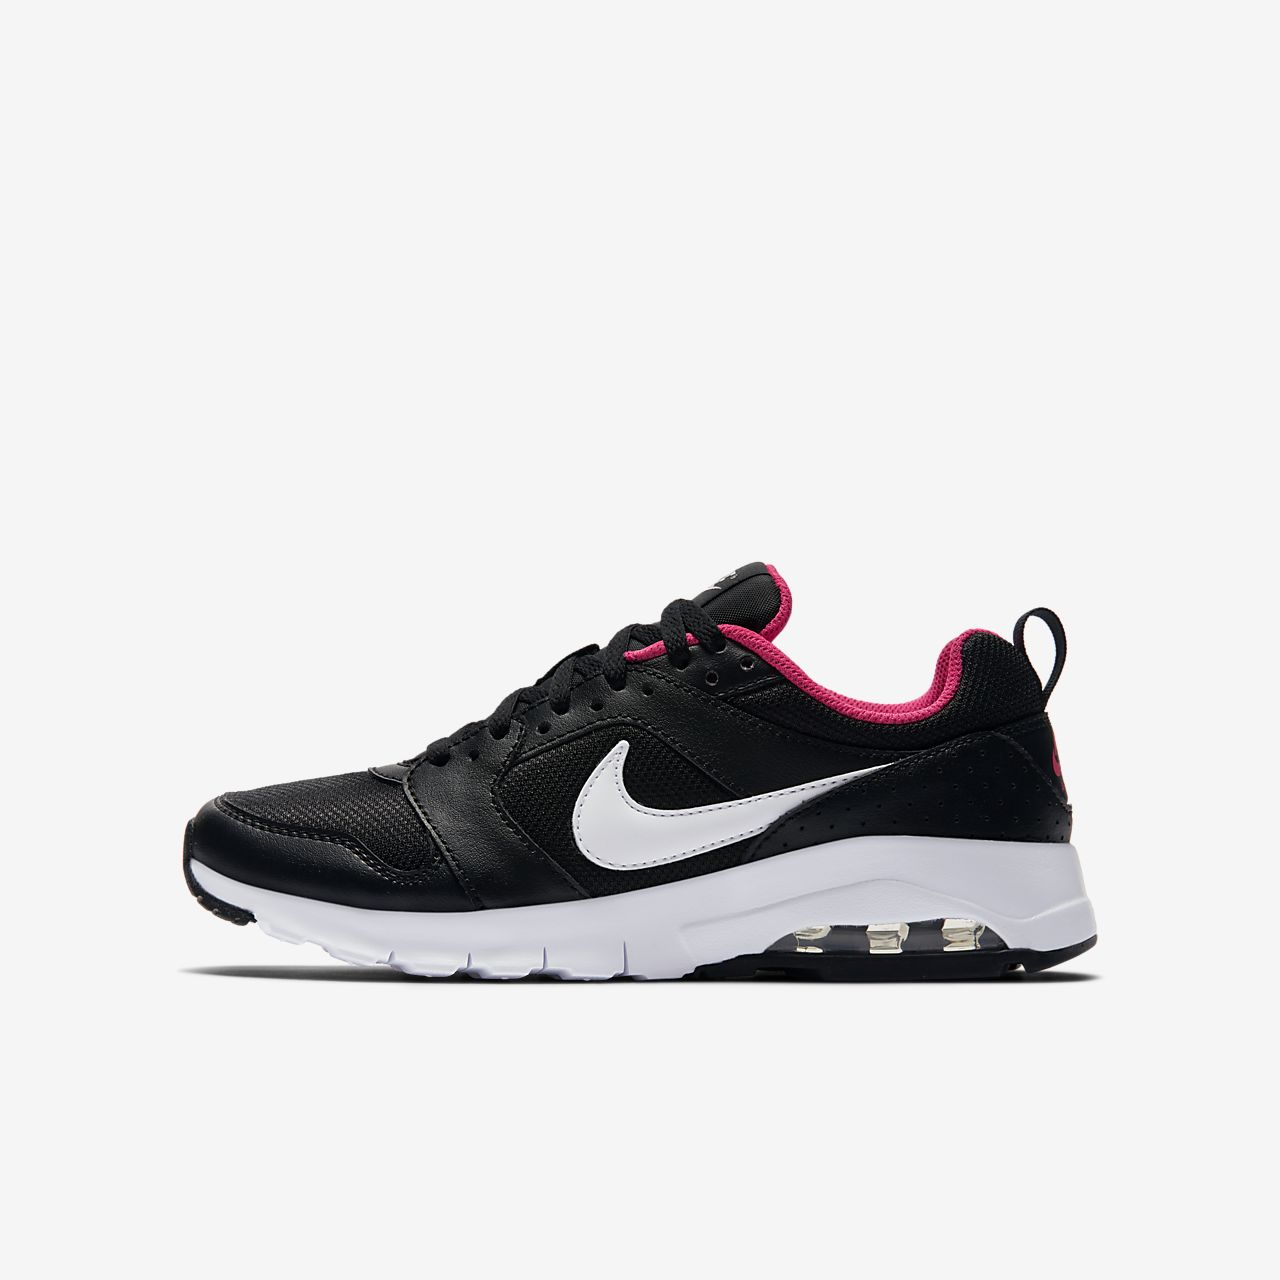 huge discount f2b64 d96b0 ... low cost chaussures nike air max motion lw dv0n98jeof bleues fashion  femme dv0n98jeof lw e539e6 a5f08